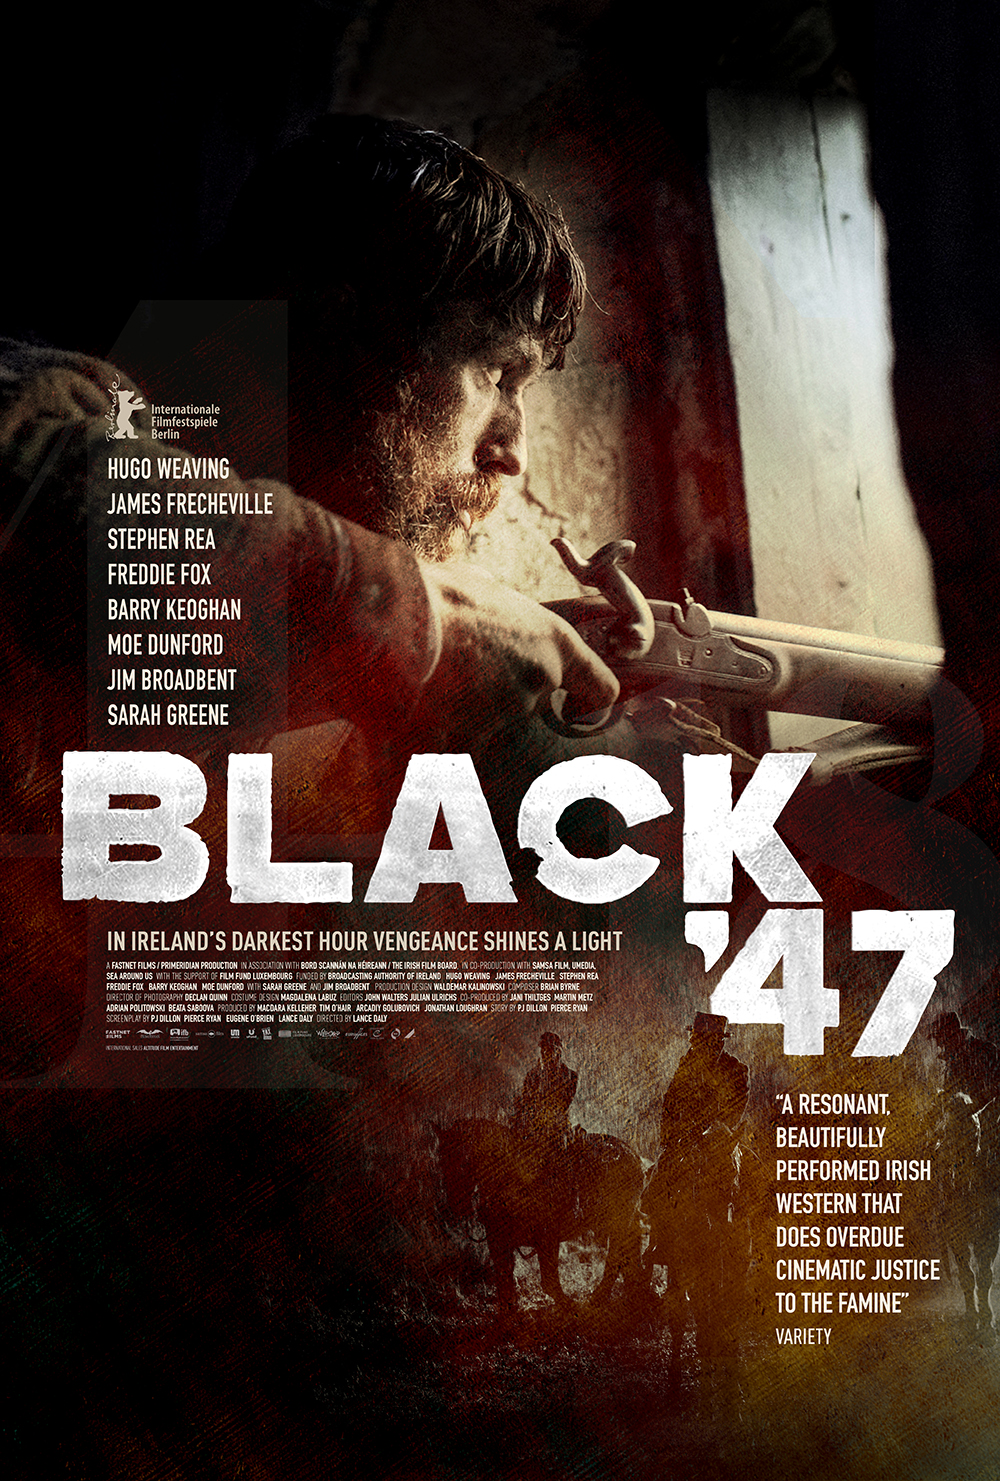 lance daly u0026 39 s black  u0026 39 47 to hit irish cinema screens on